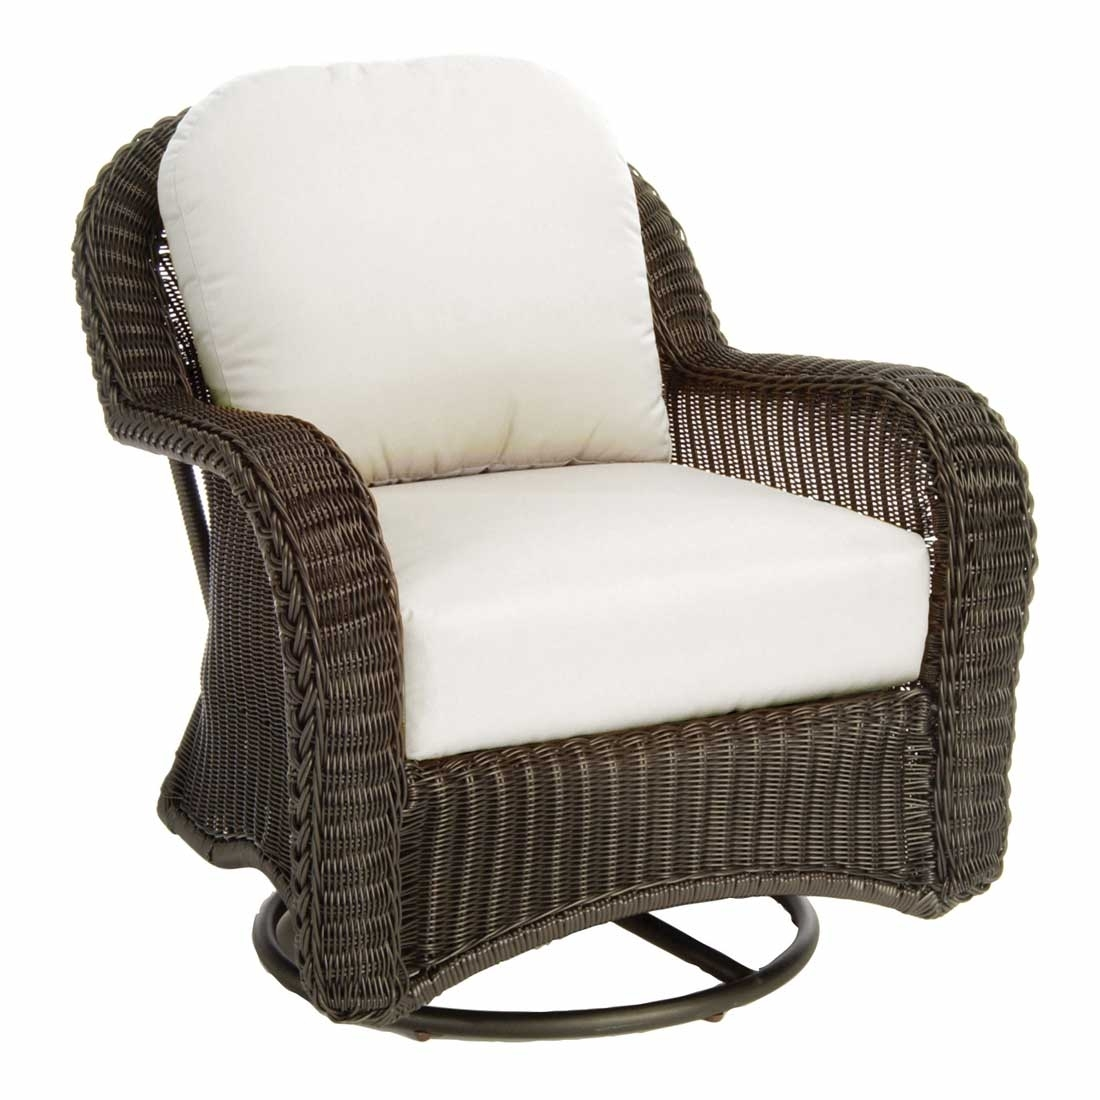 Classic Outdoor Wicker Swivel Glider Inside Wicker Rocking Chairs And Ottoman (View 5 of 15)